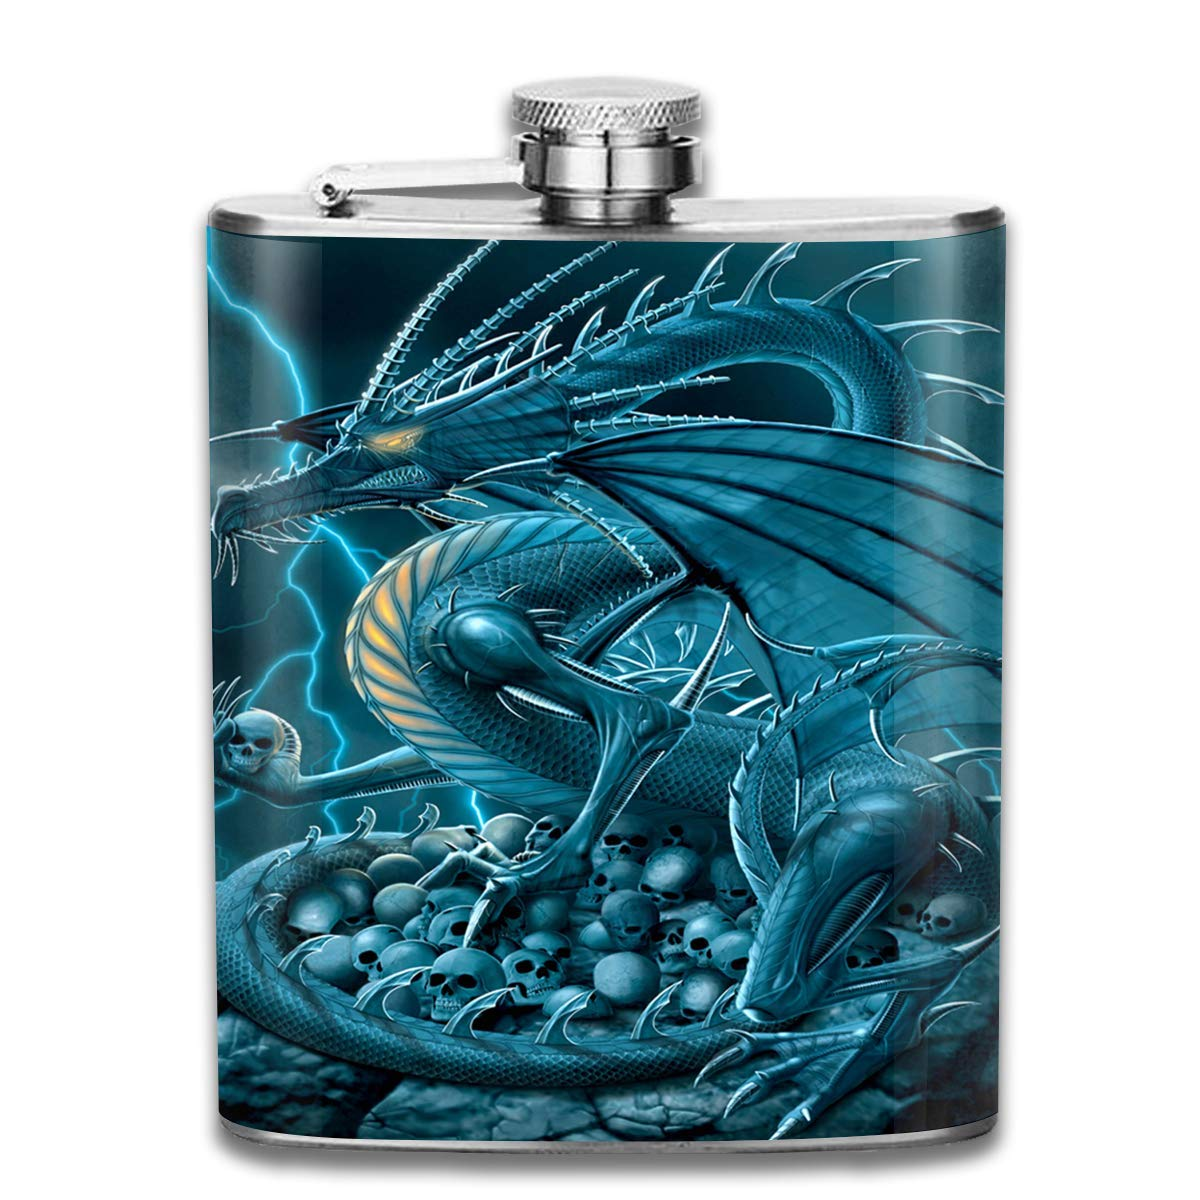 Stainless Steel Flask Fantasy Lightning Dragon Wine Pot Whiskey Container Flask Pocket for Unisex